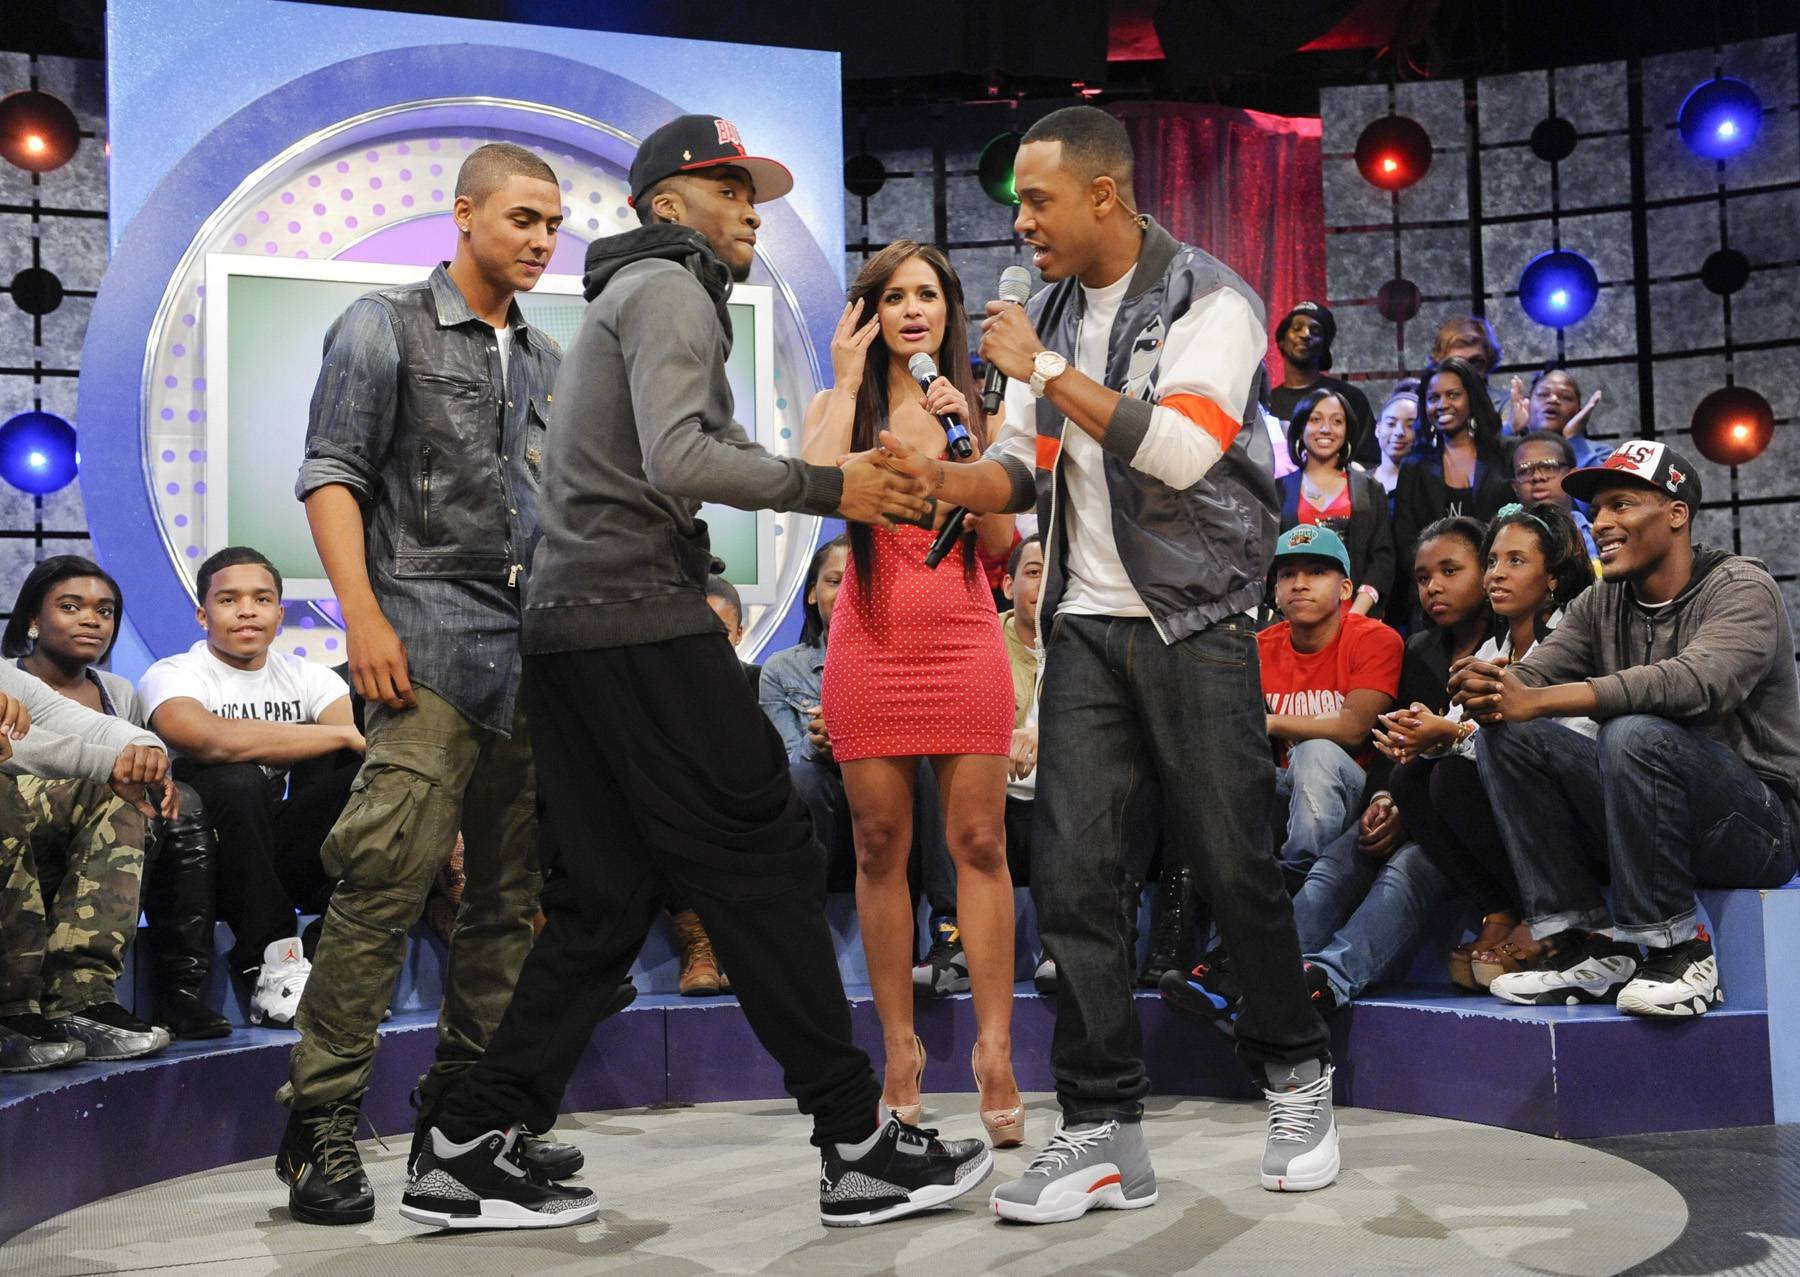 His Partner in Rhyme - Quincy is joined by Kendre onstage with Terrence J and Rocsi Diaz at 106 & Park, May 3, 2012. (Photo: John Ricard / BET)